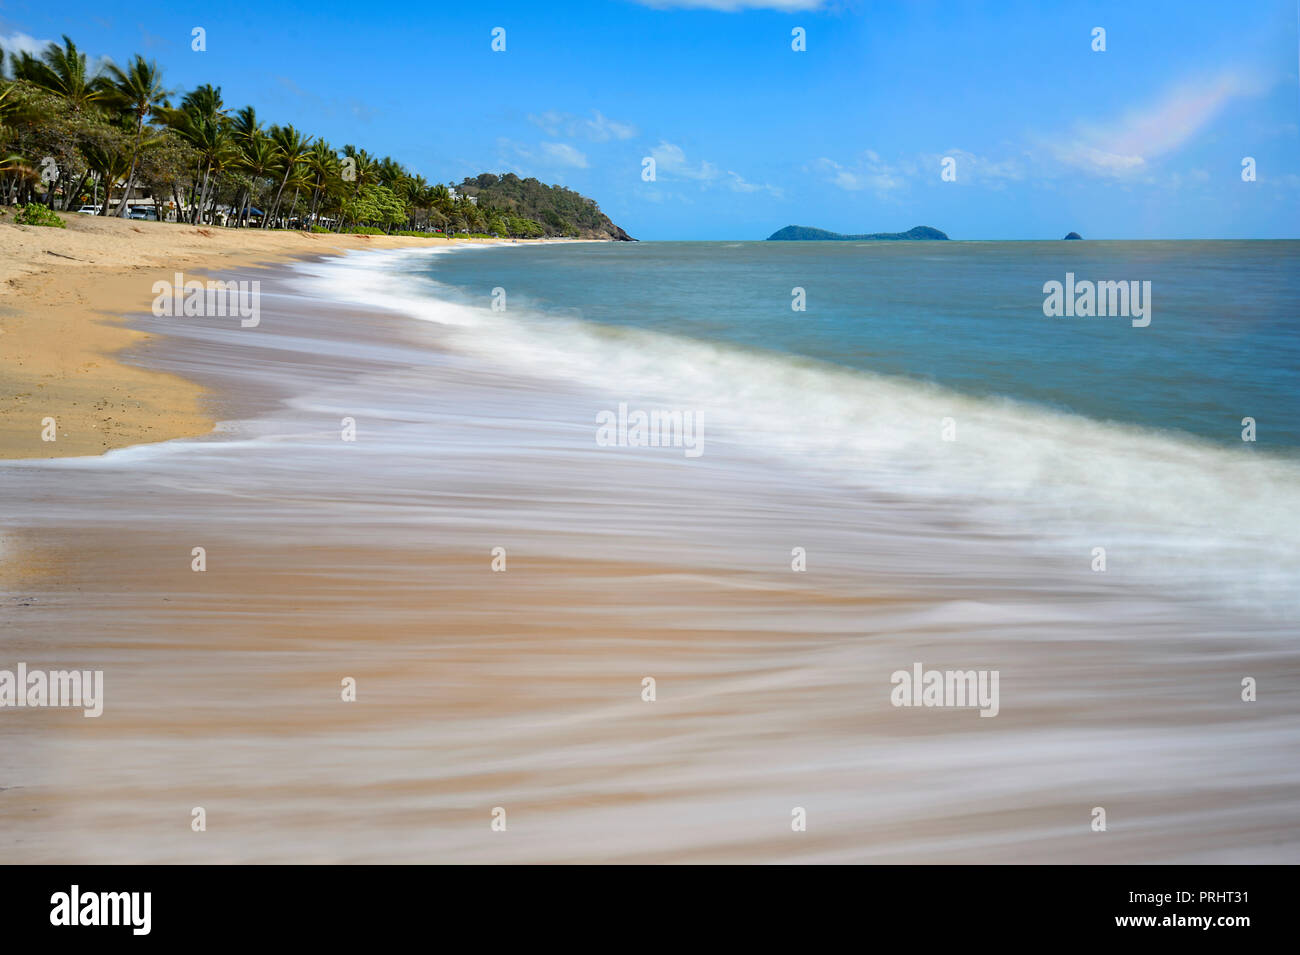 motion-blur-of-lapping-waves-at-the-scen